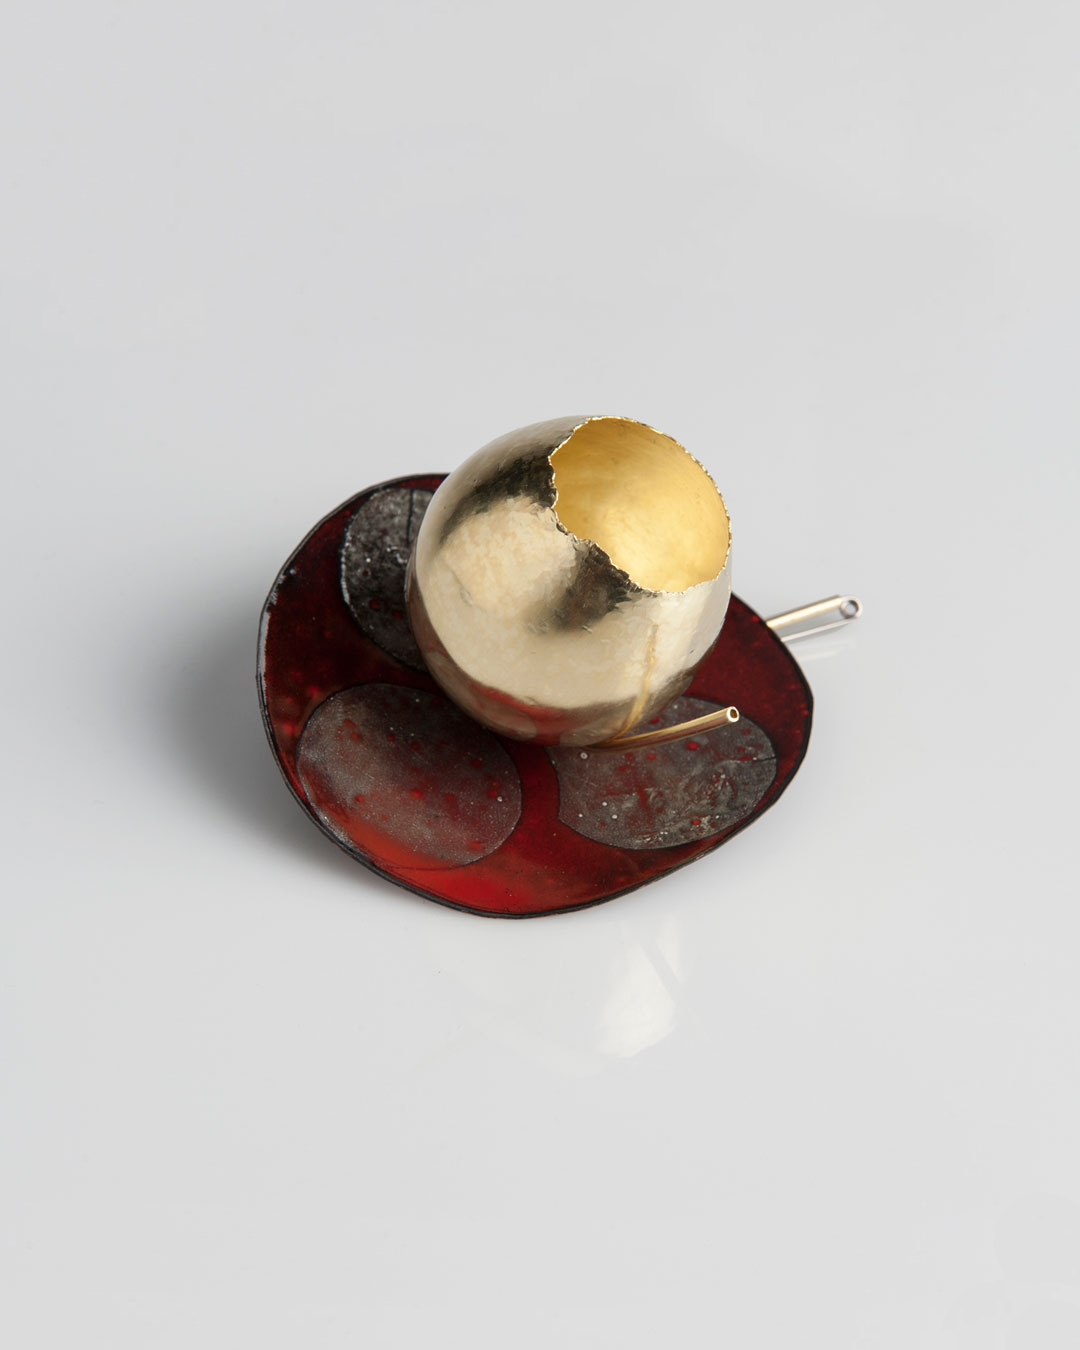 Andrea Wippermann, Blüte auf Rot (Bloom in Red), 2015, brooch; enamelled copper, gold, stainless steel, 80 x 80 x 50 mm, €5800